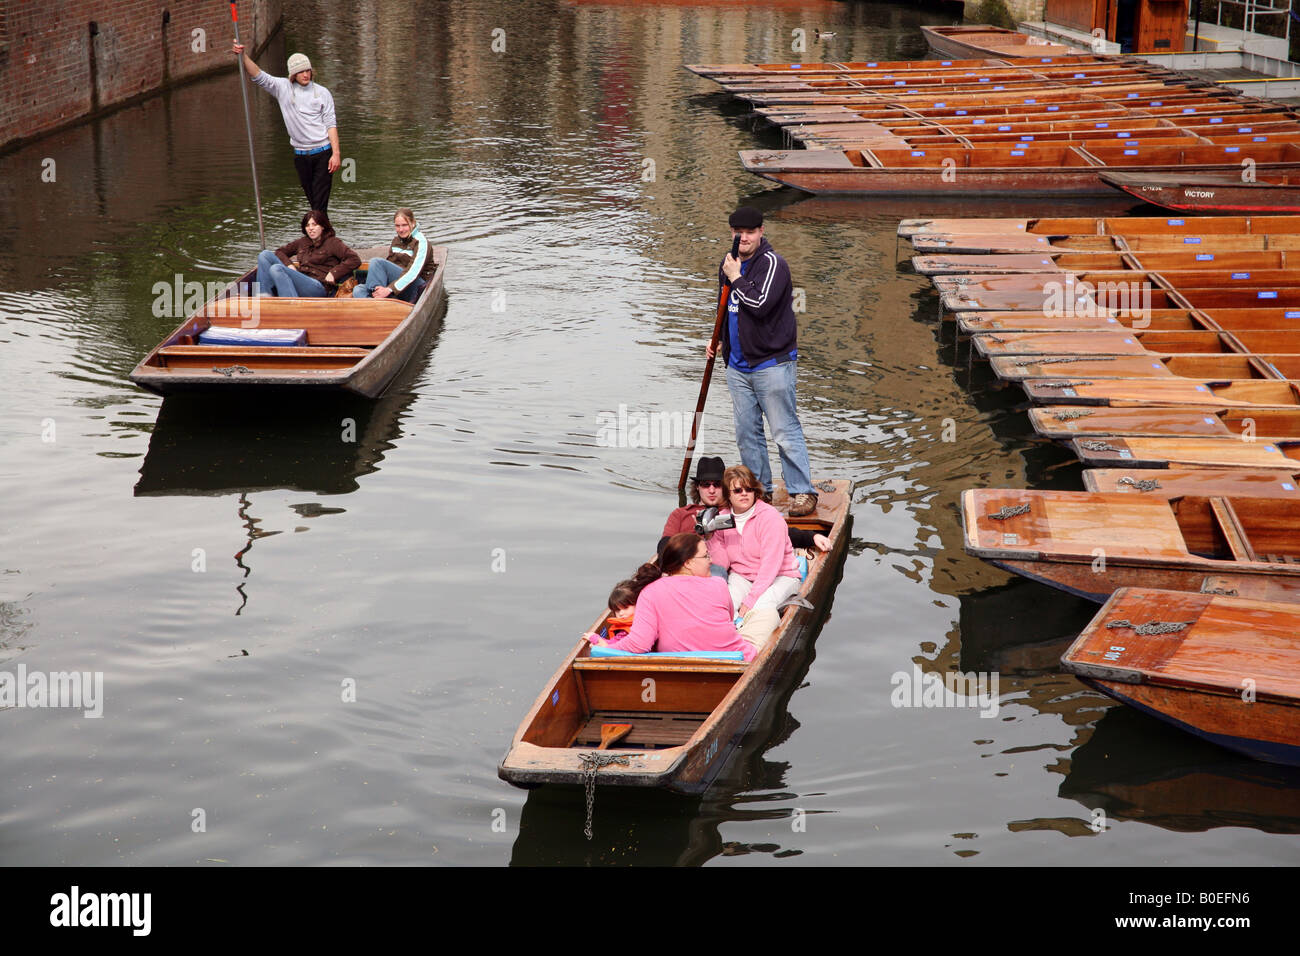 Tourists being taken on tour by punt on River Cam in Cambridge - Stock Image